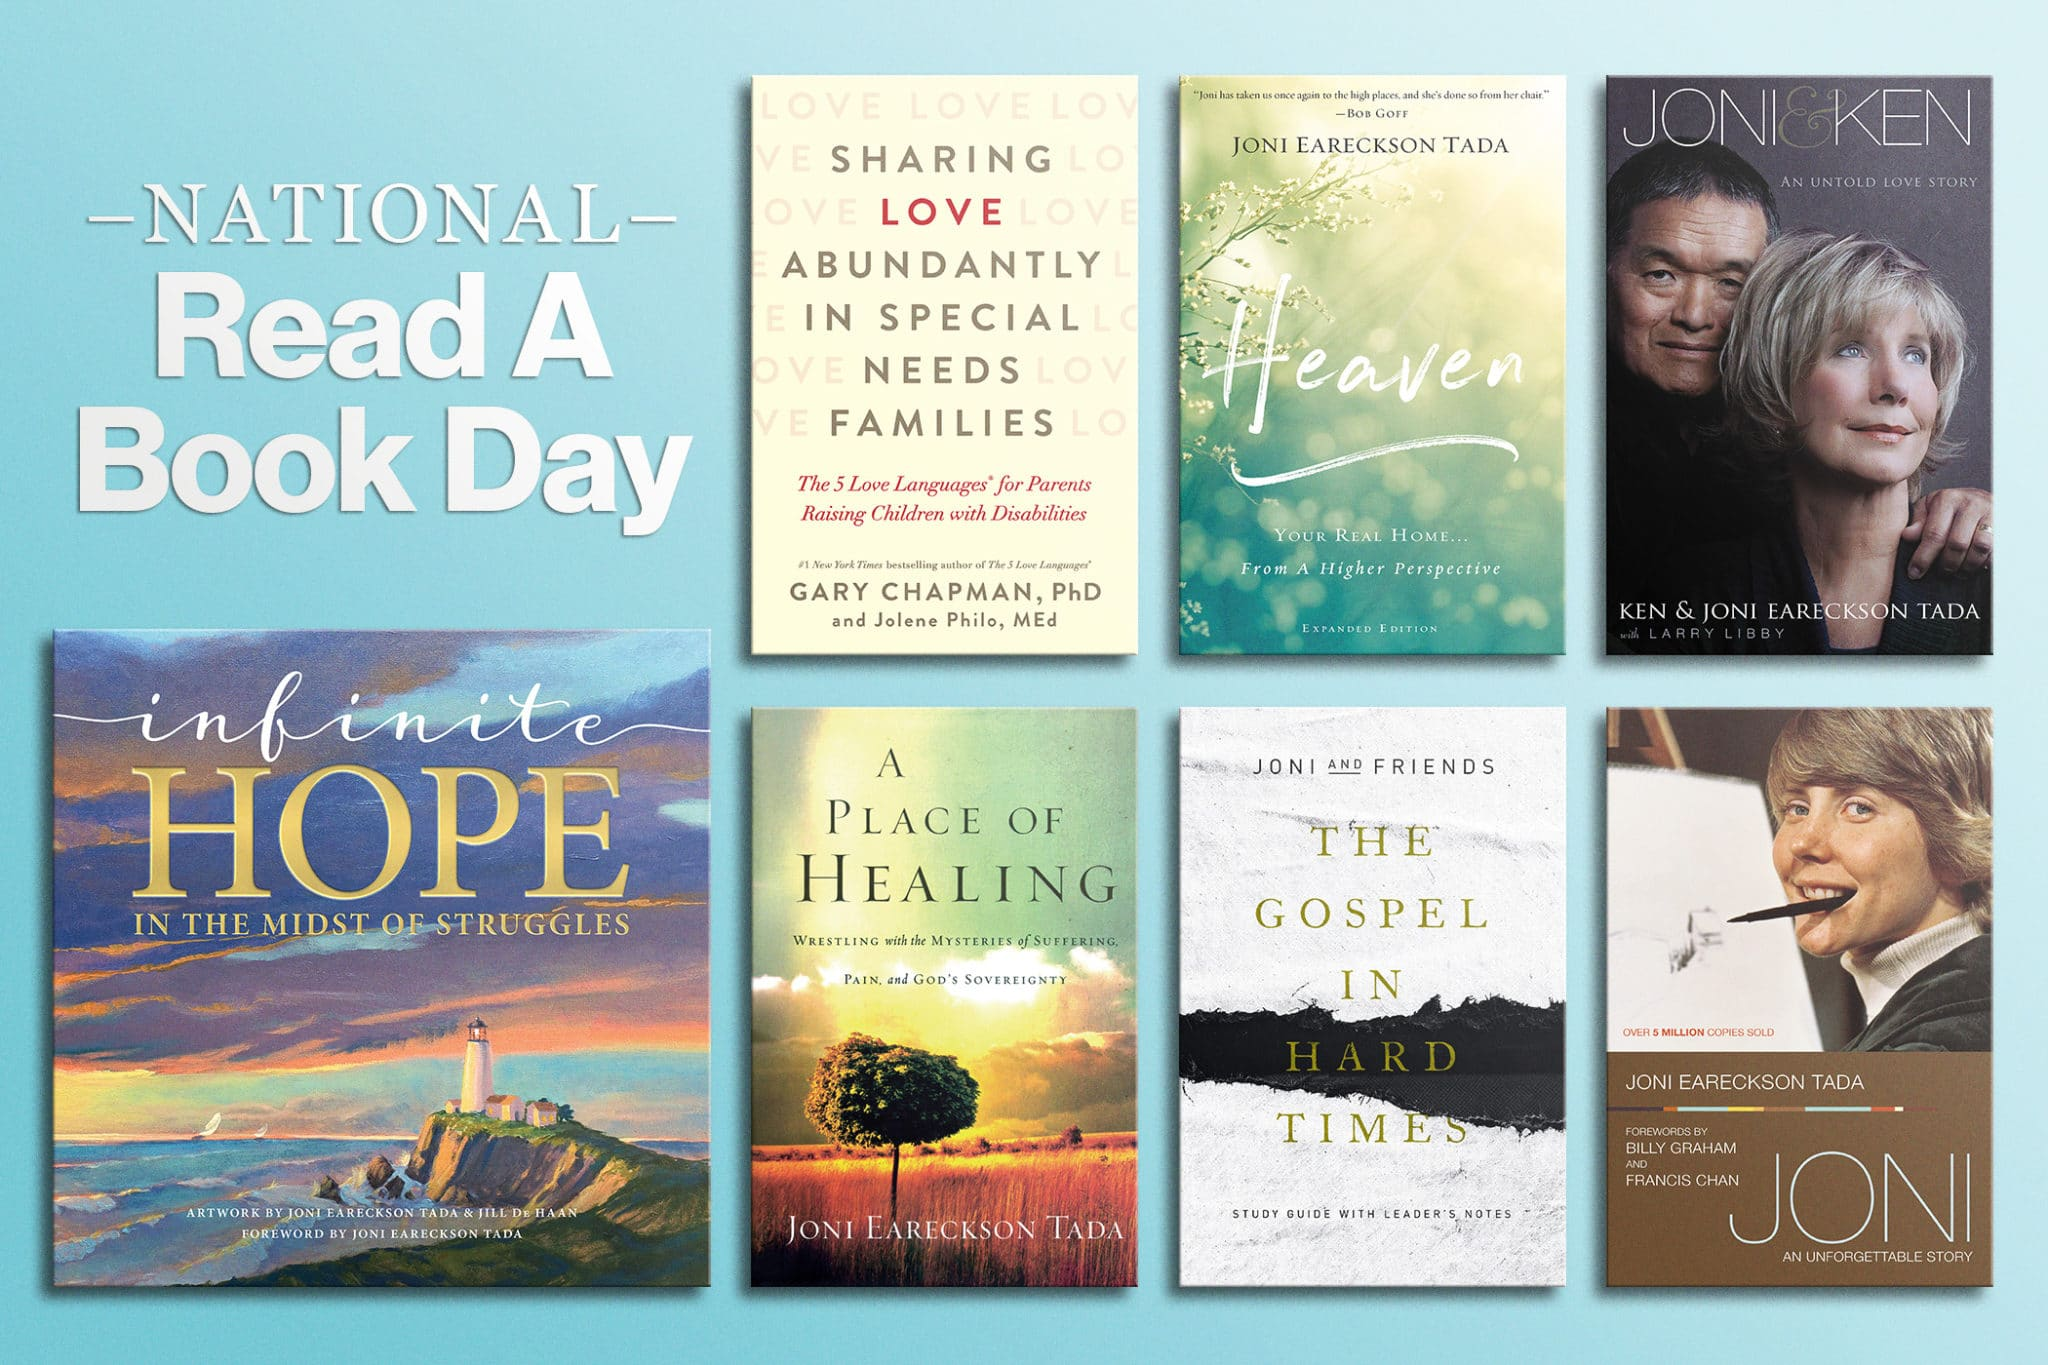 National Read A Book Day 2019 Blog